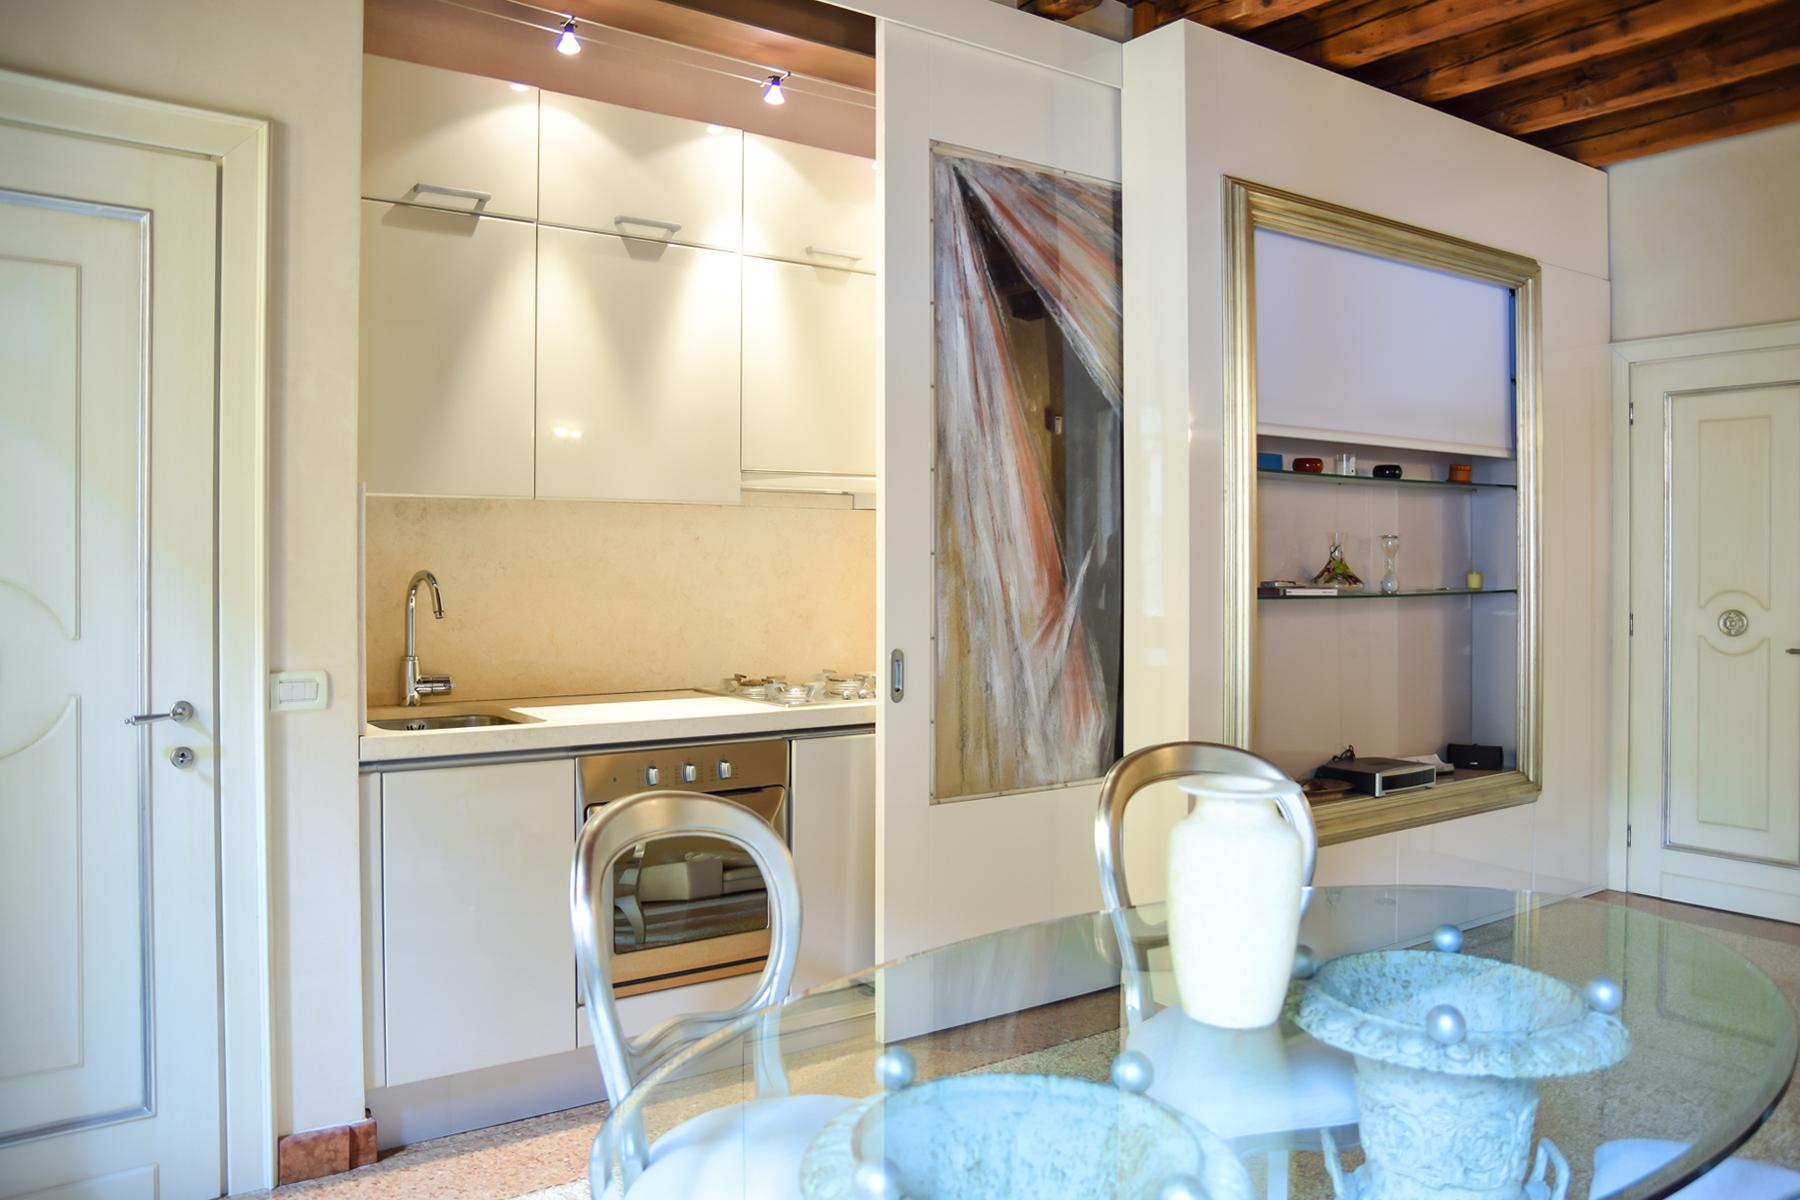 Exquisite apartment just few steps away from Piazza delle Erbe - 6